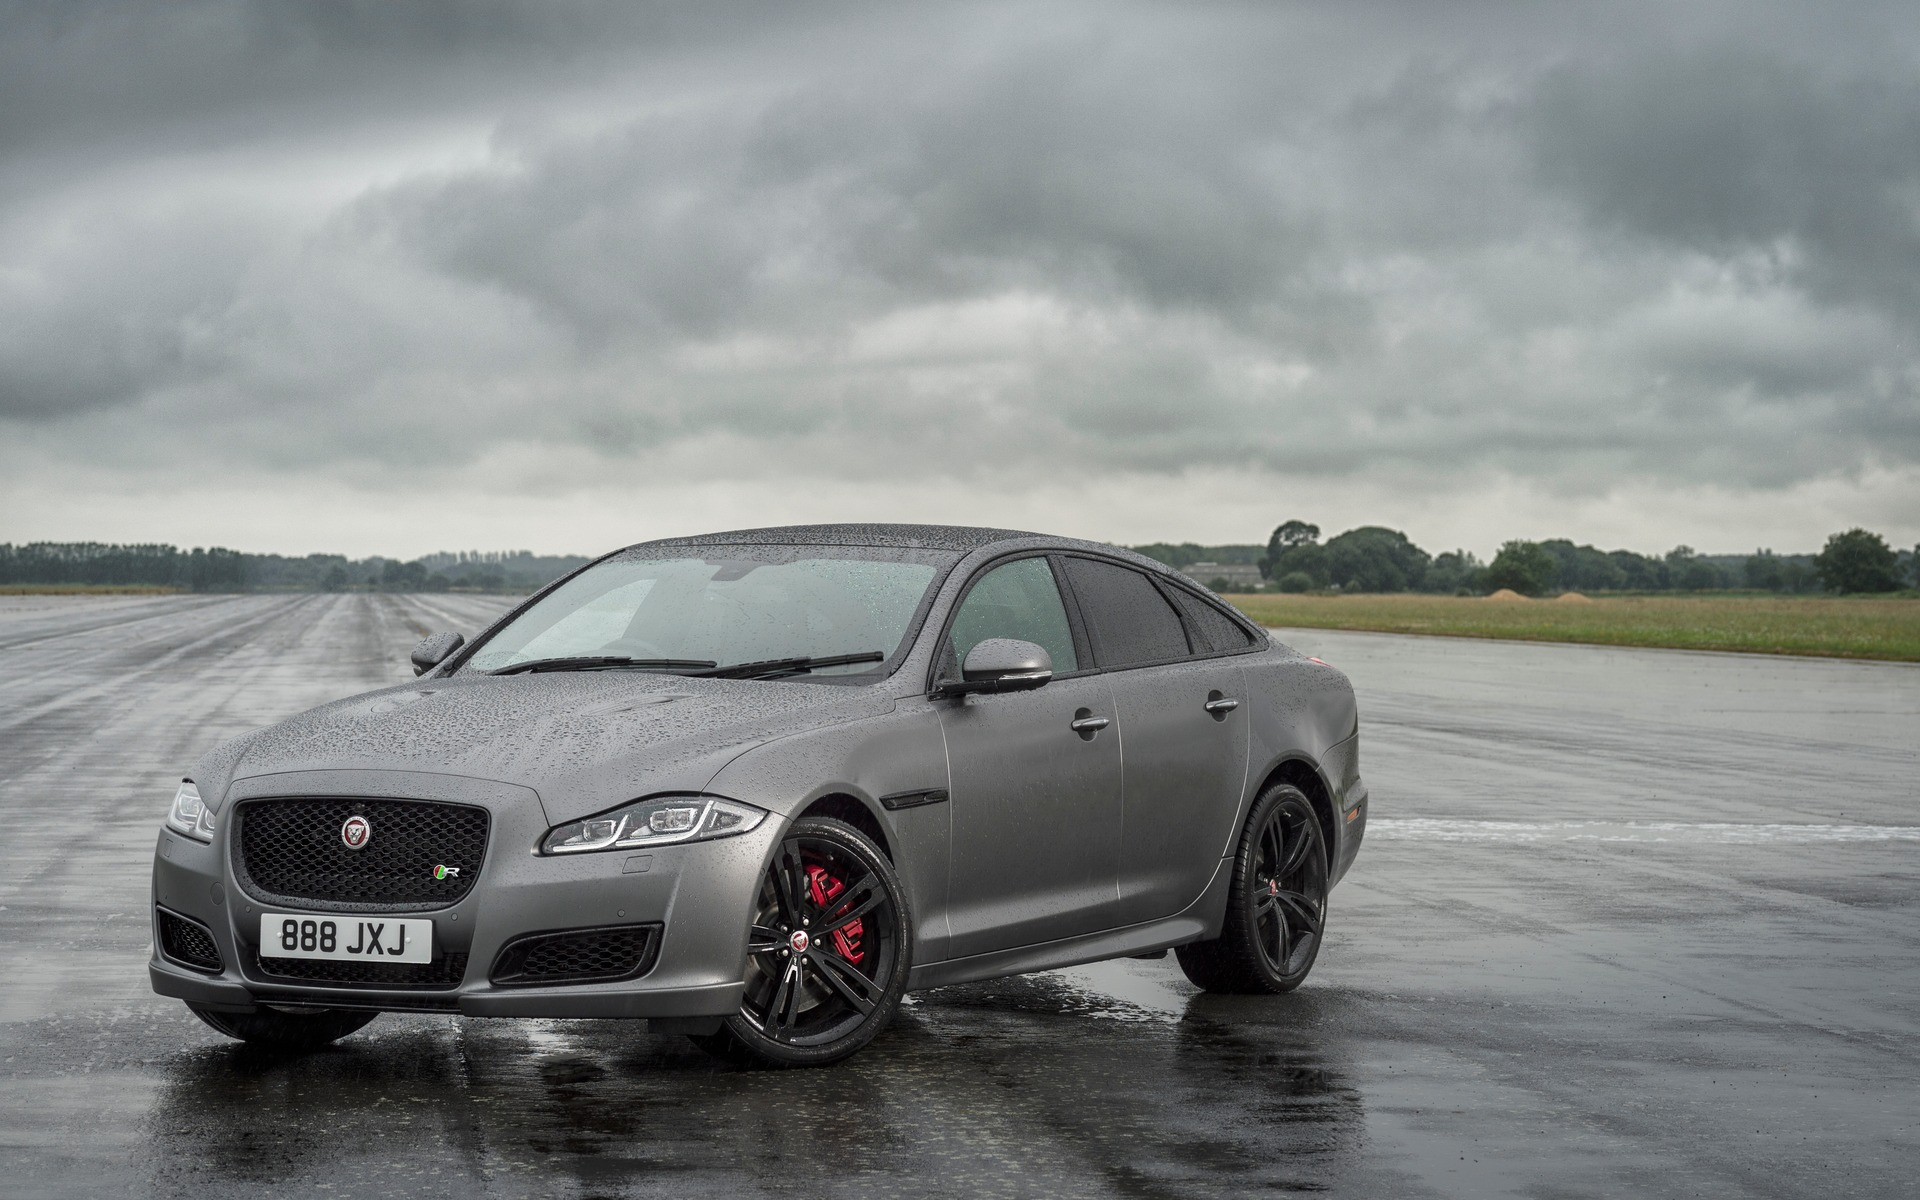 2018 Jaguar Xjr575 Added To The Line Up The Car Guide